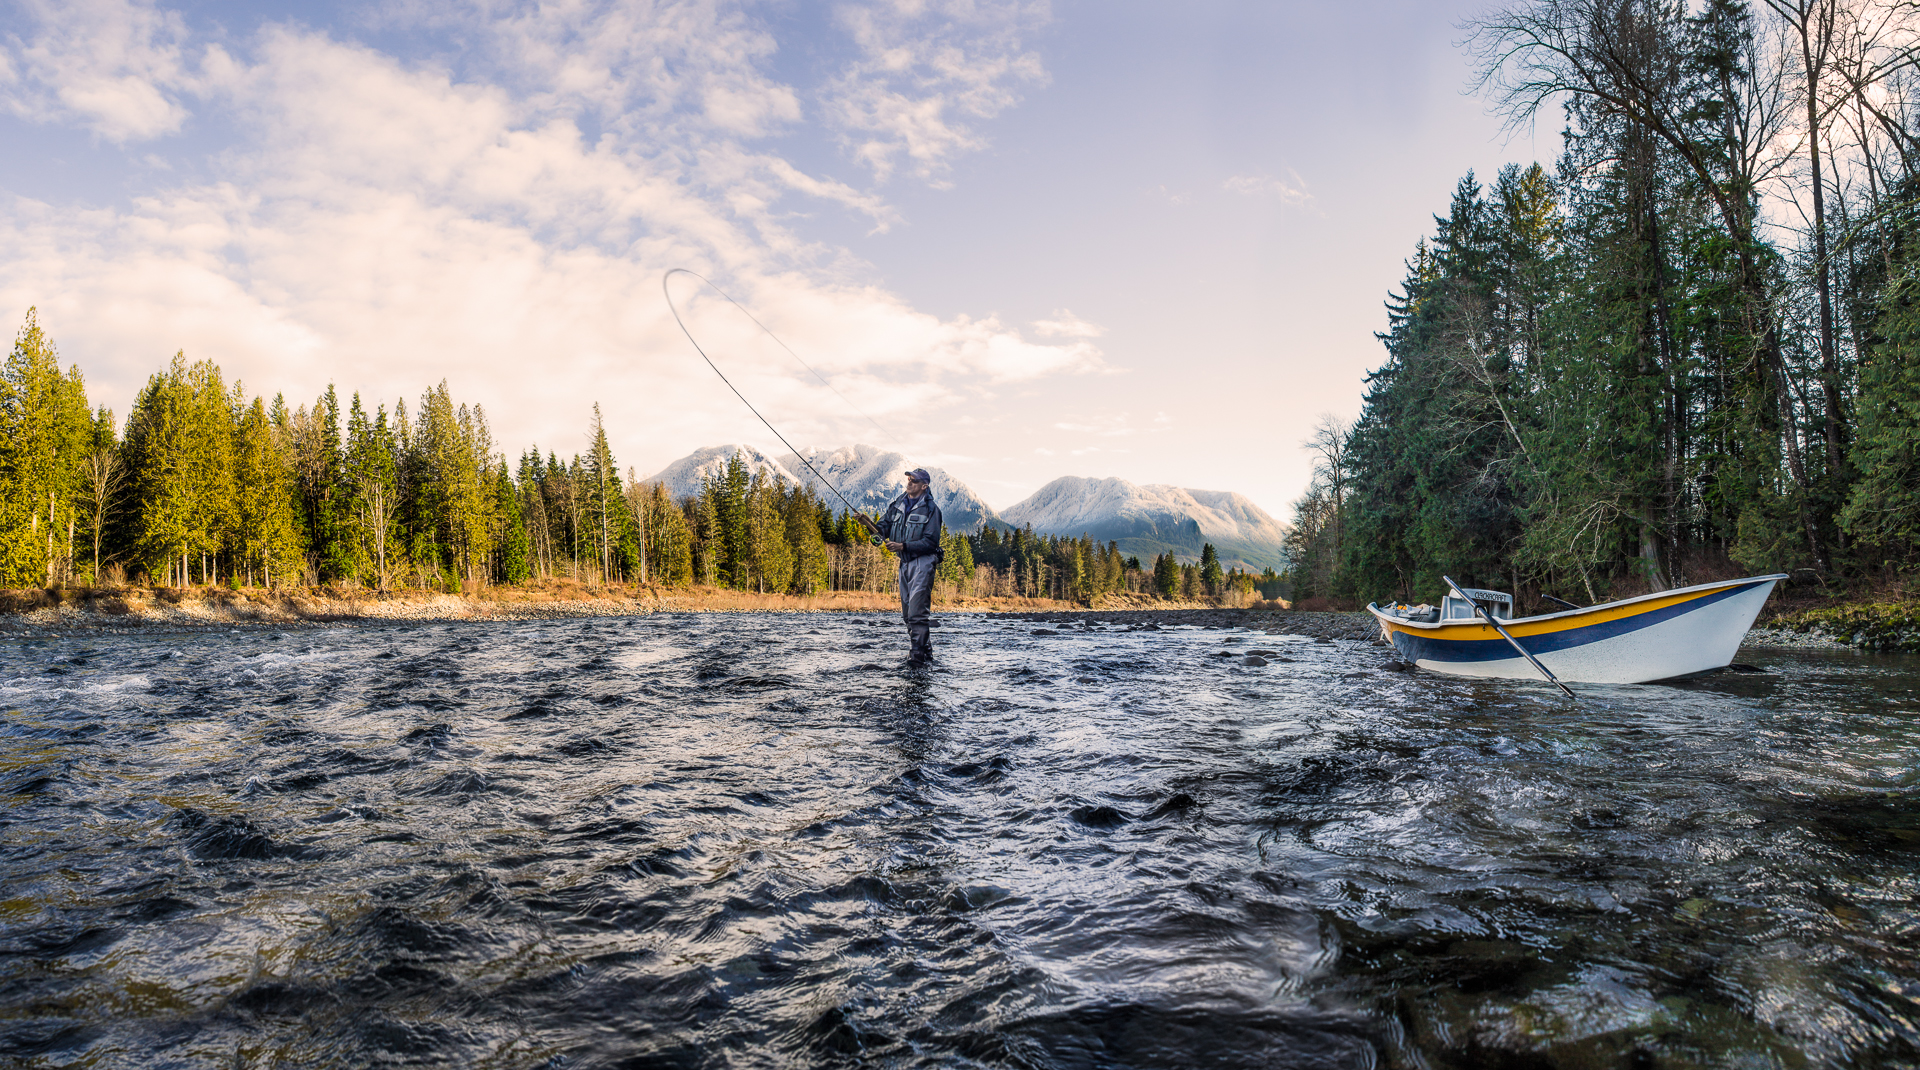 Skykomish River Fly Fishing Drift Boat excursion/ Adventure